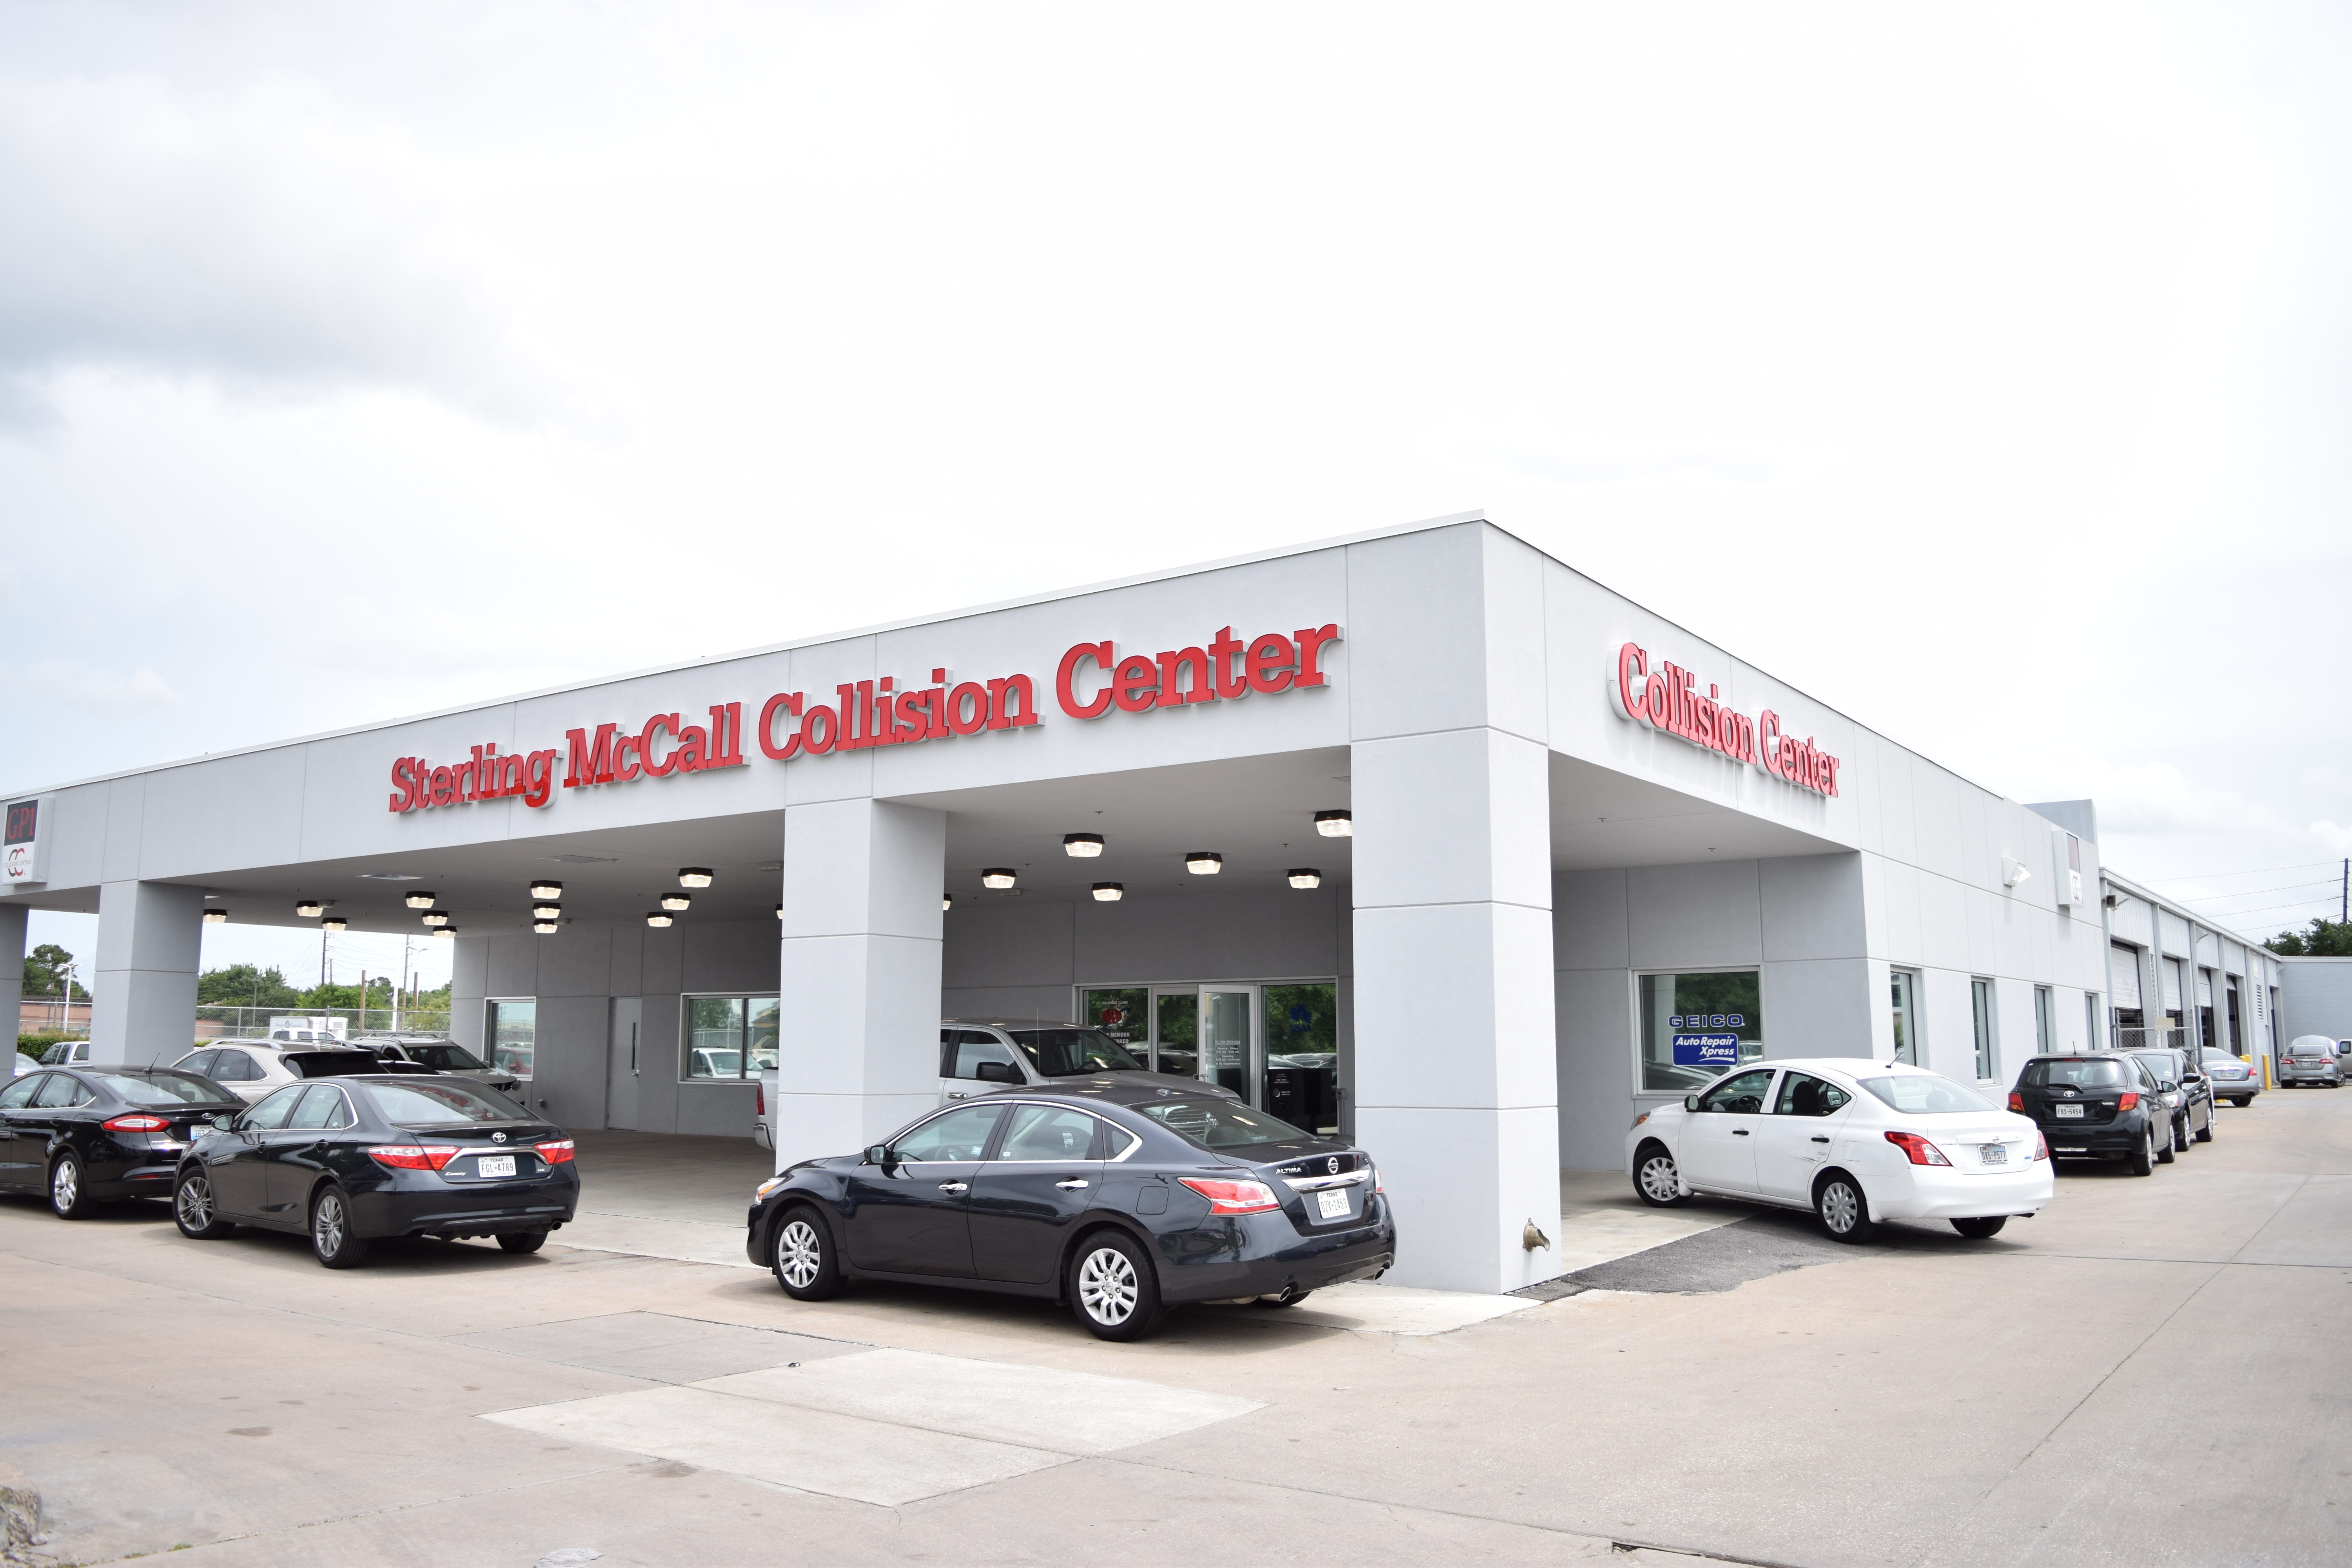 sterling mccall nissan collision center of stafford at 12230 southwest freeway stafford tx on fave. Black Bedroom Furniture Sets. Home Design Ideas